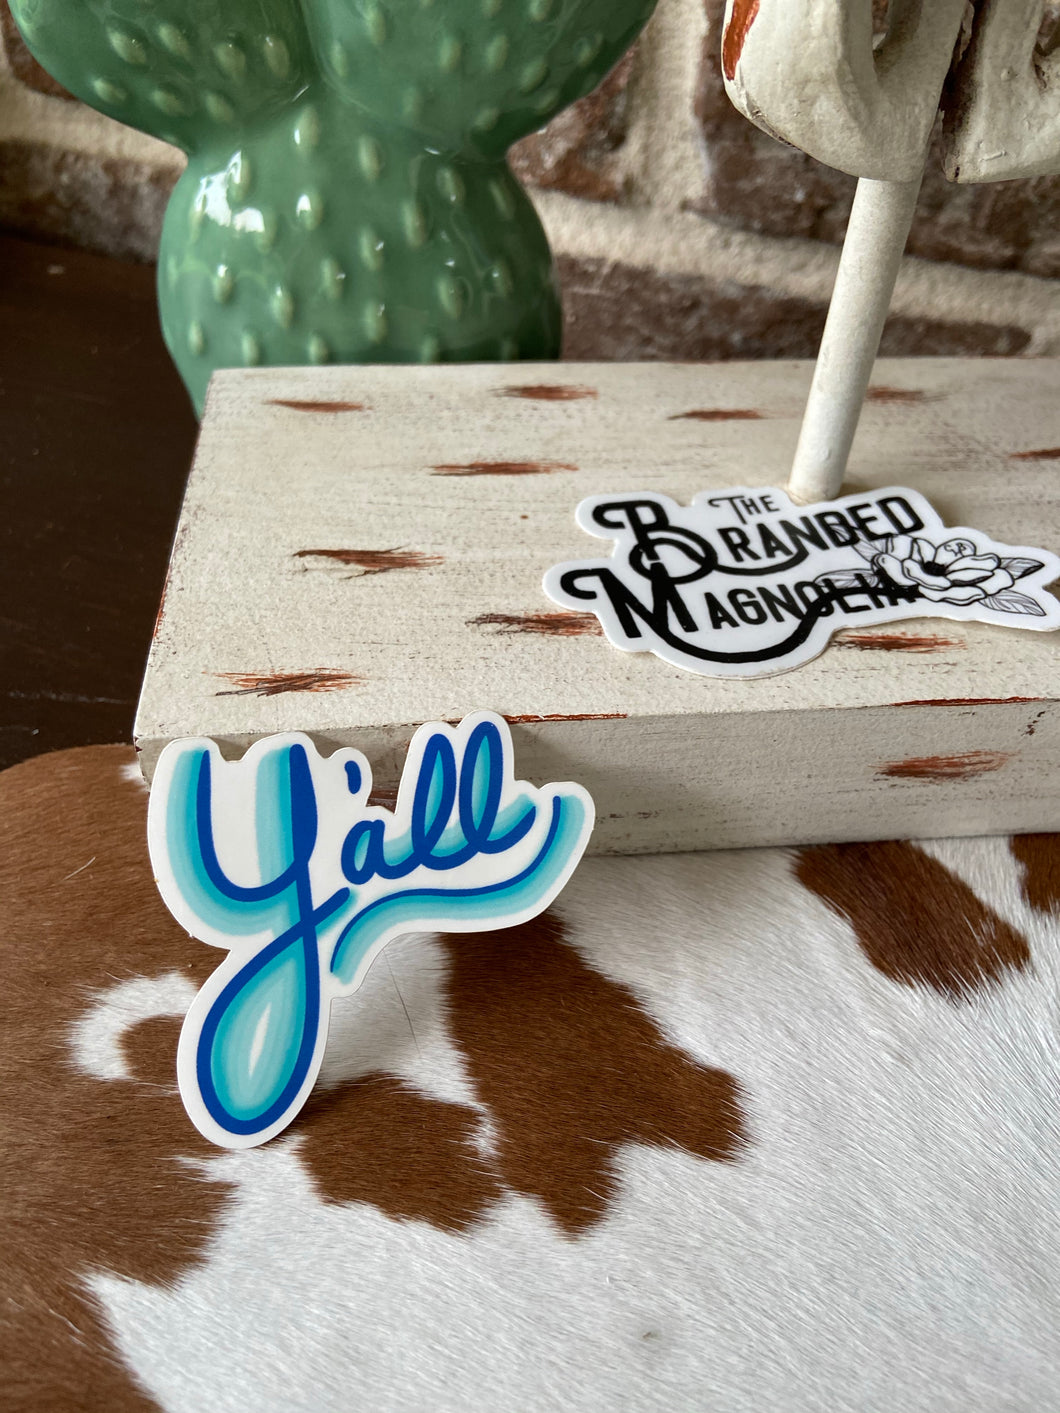 THE Y'ALL STICKER